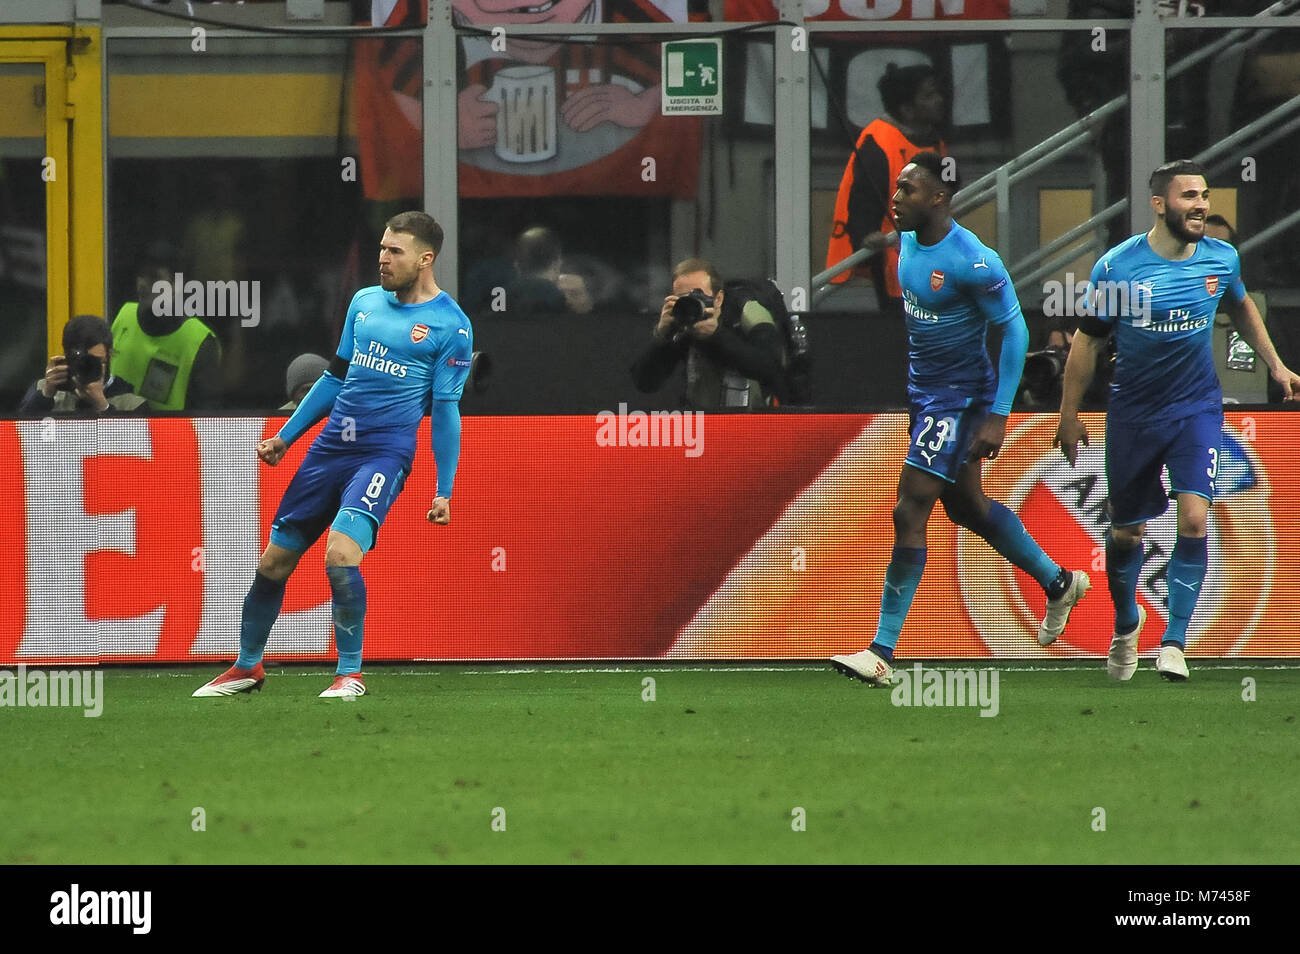 Milan, Italy. 8th March, 2018. Aaron Ramsey (Arsenal FC) during the match UEFA Europa League between AC Milan and Stock Photo